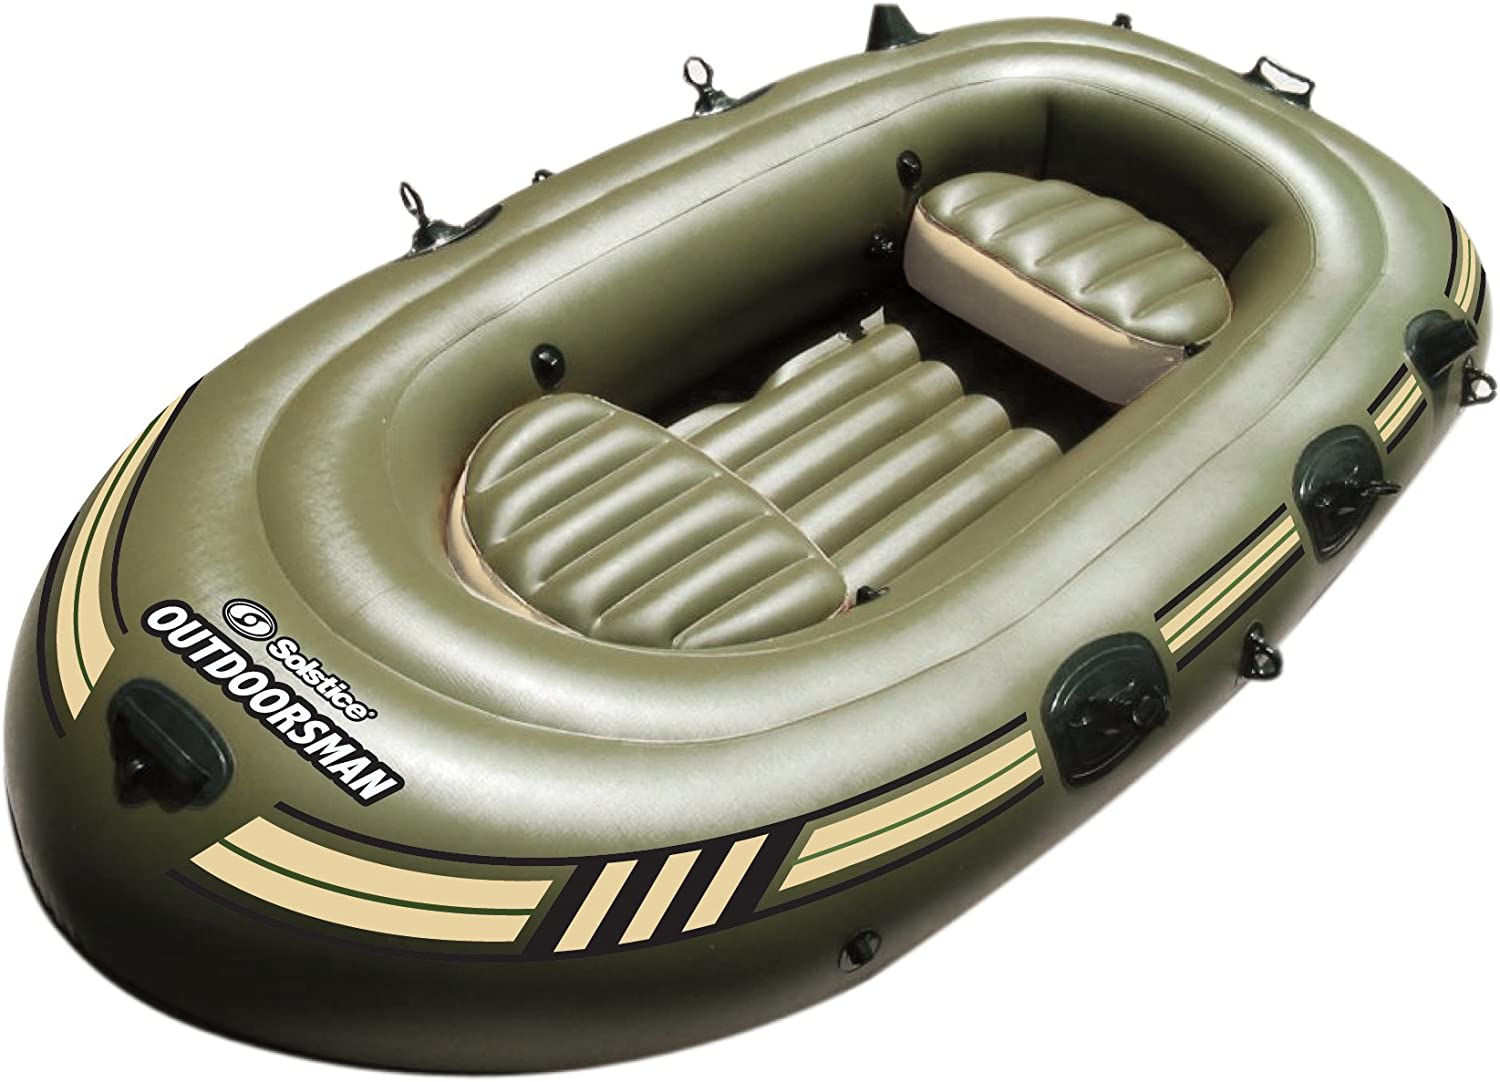 Amazon.com: Solsticio Outdoorsman inflable barco de pesca ...